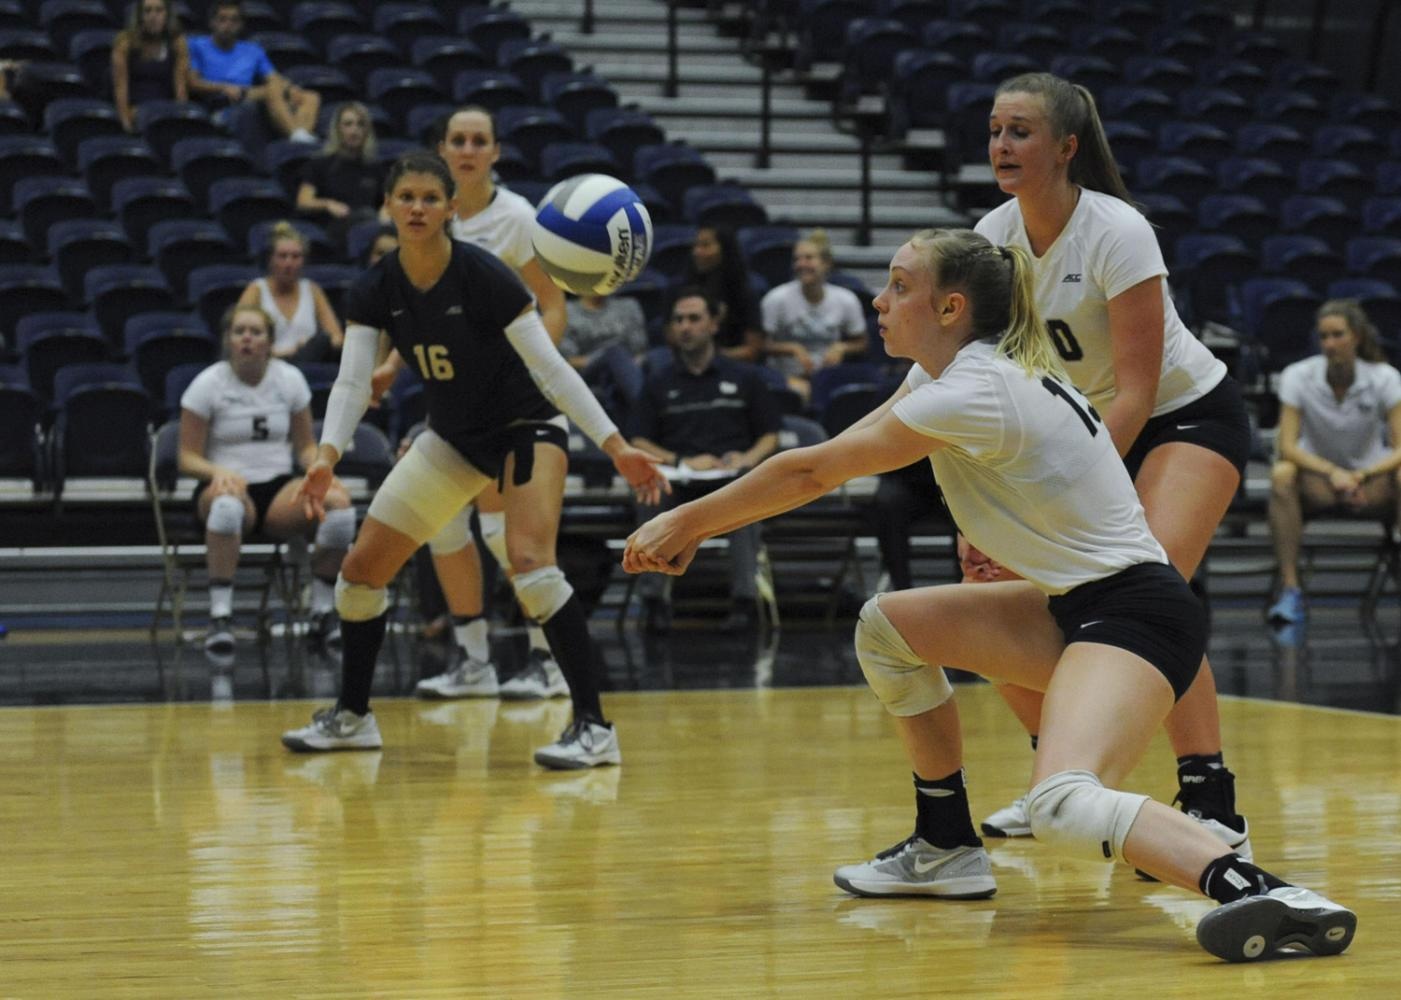 The Pitt women's volleyball team moved to 2-3 this weekend and look to get above .500 next week at the Western Kentucky invitational. (TPN file photo)